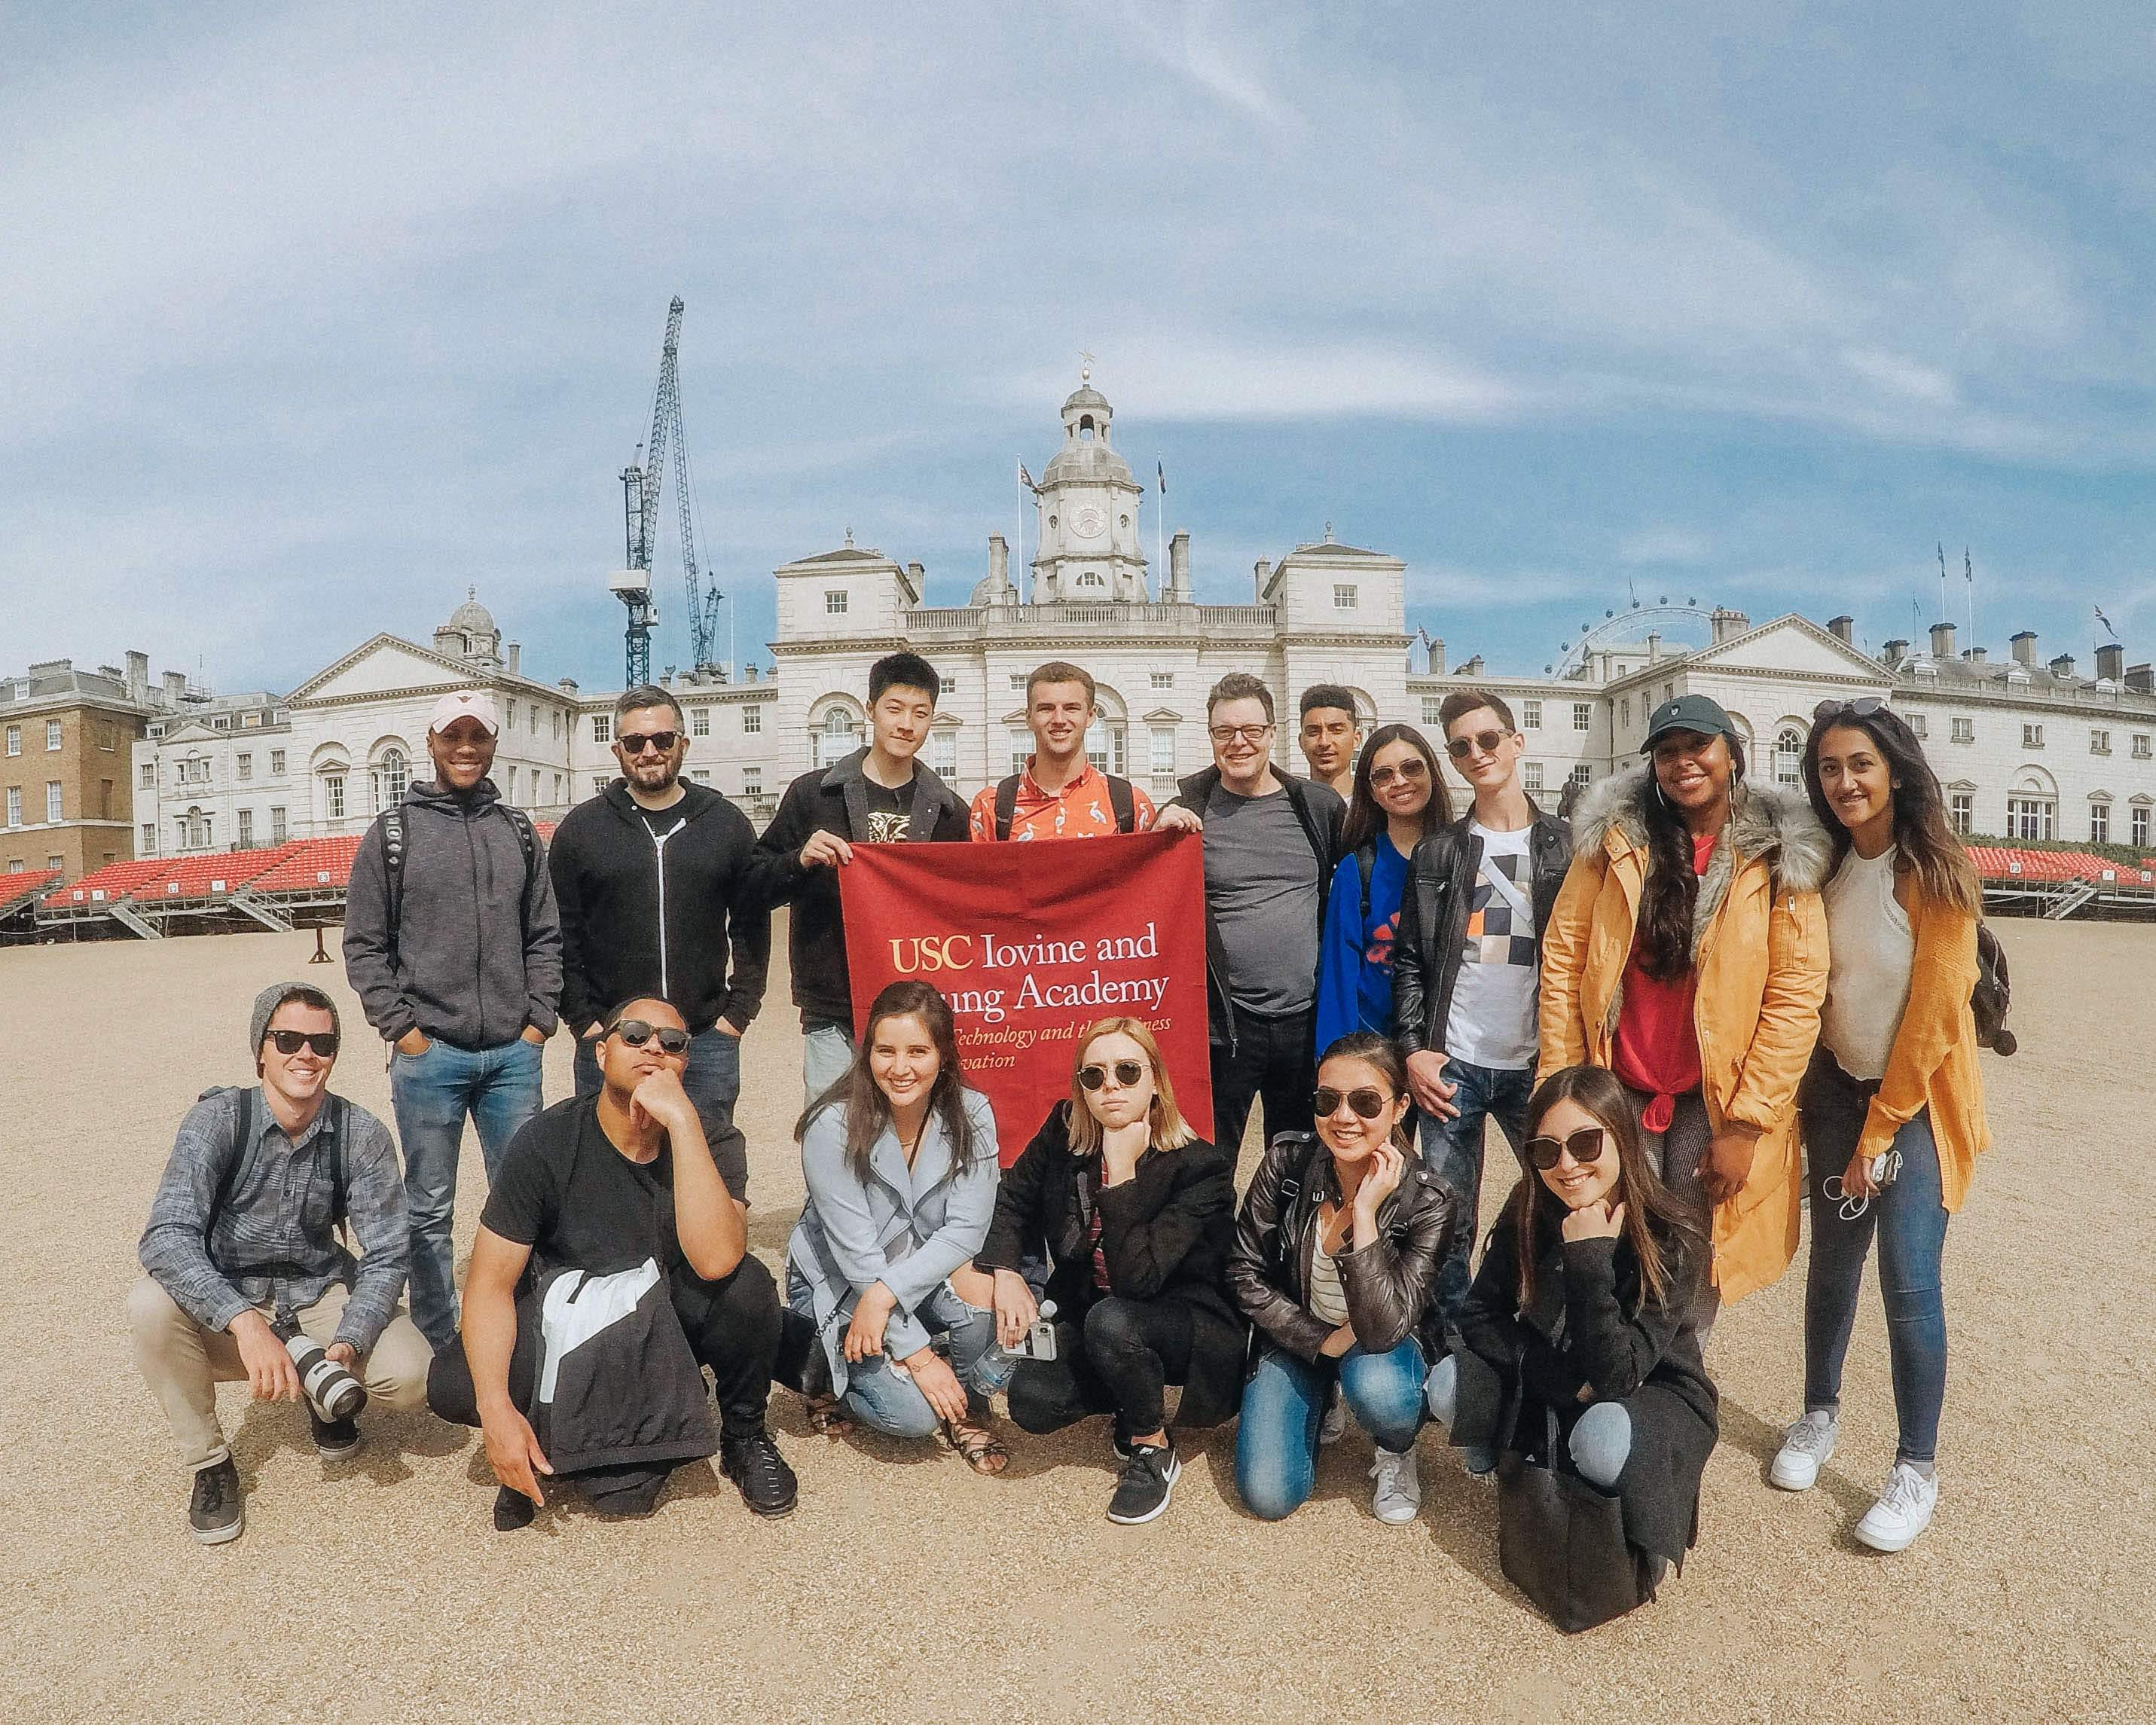 A class takes a photo in London while holding a USC IYA banner